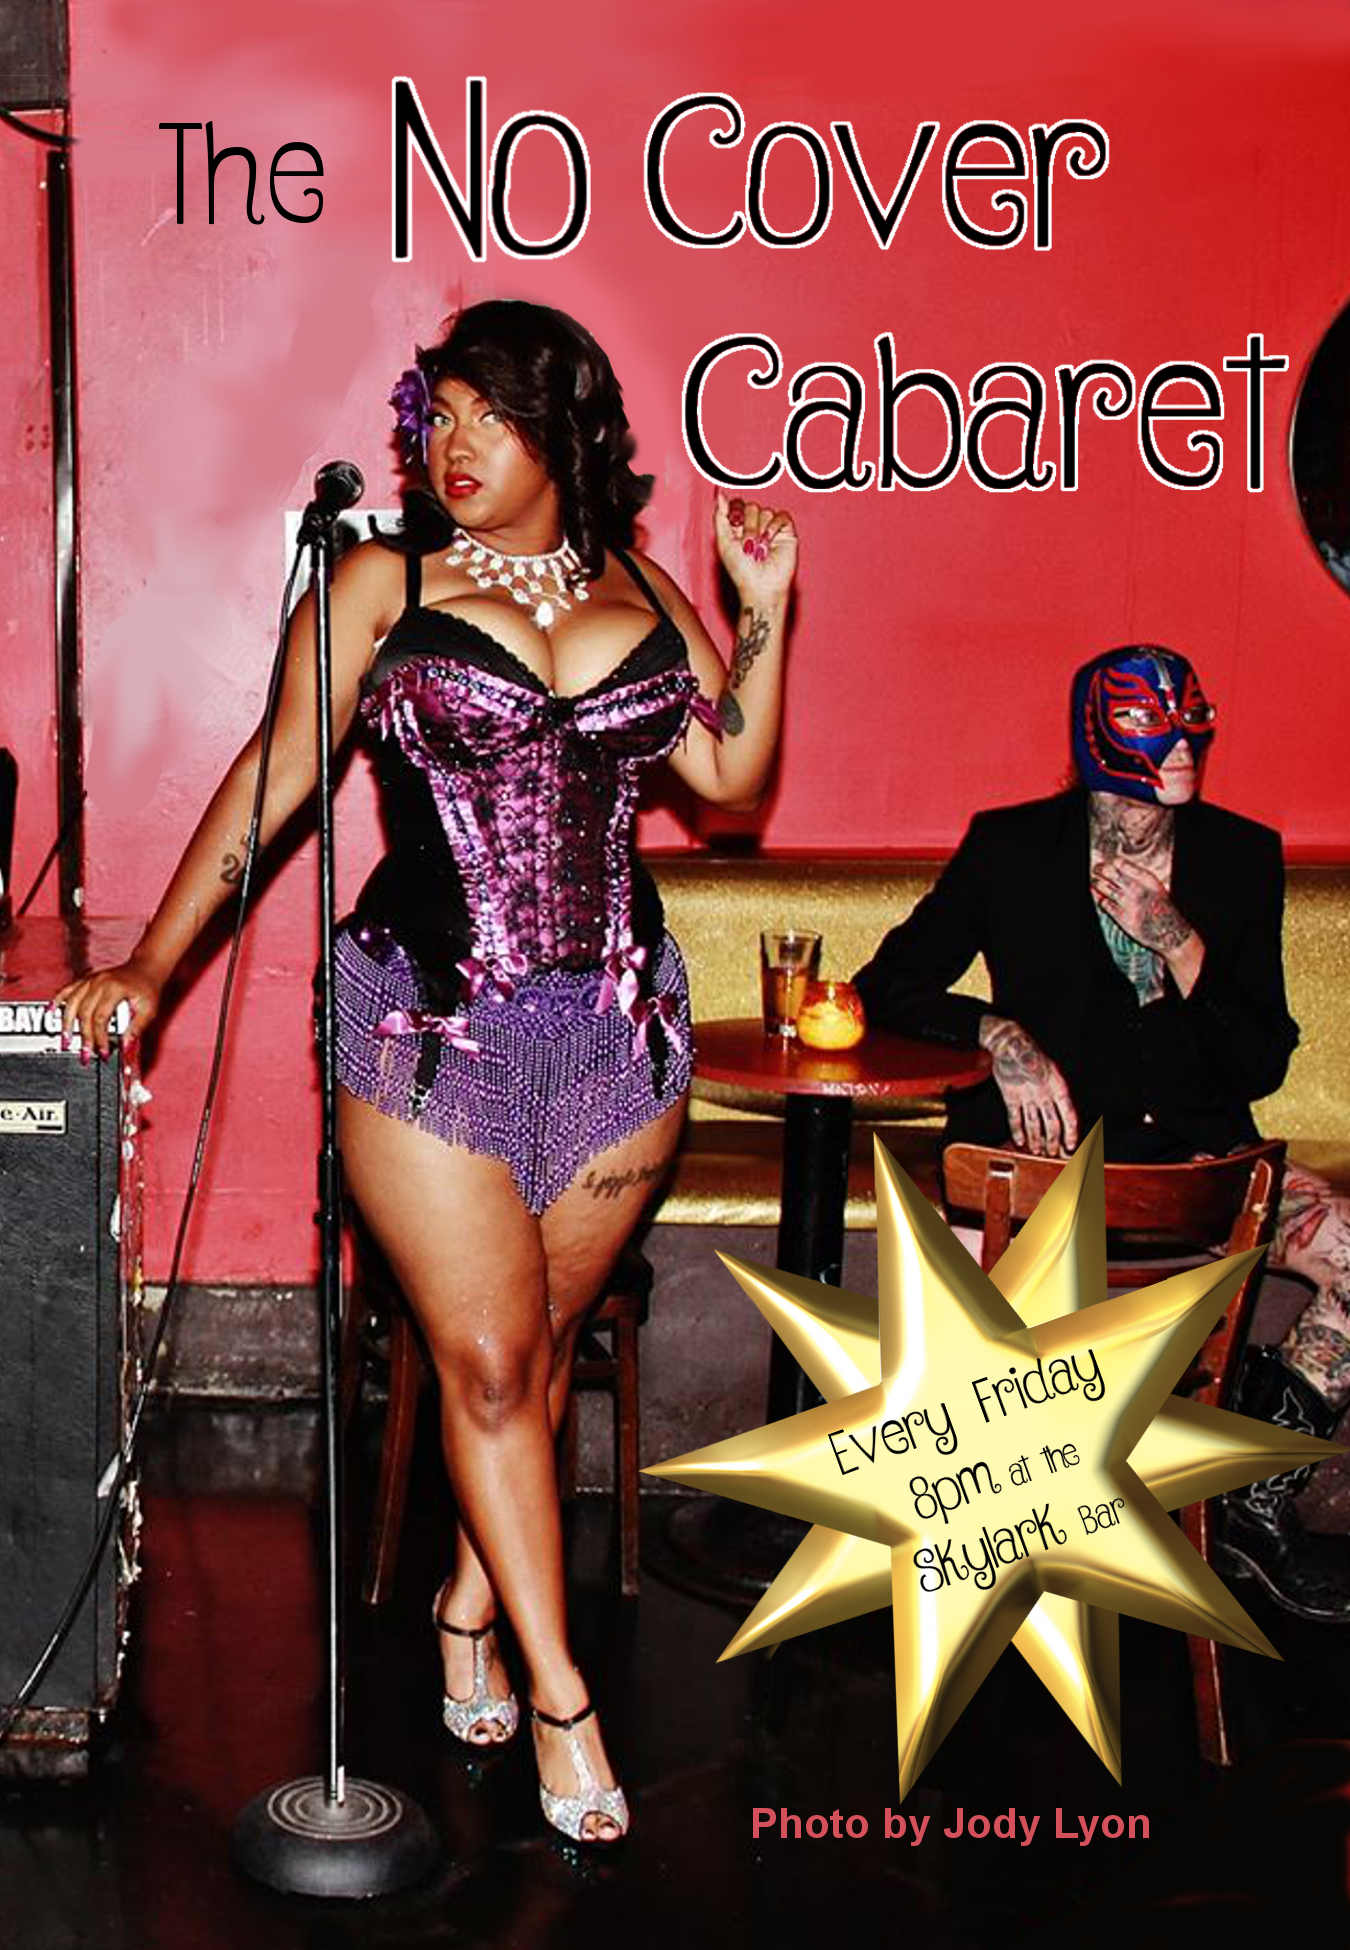 No Cover Cabaret flier Elyse star FINAL